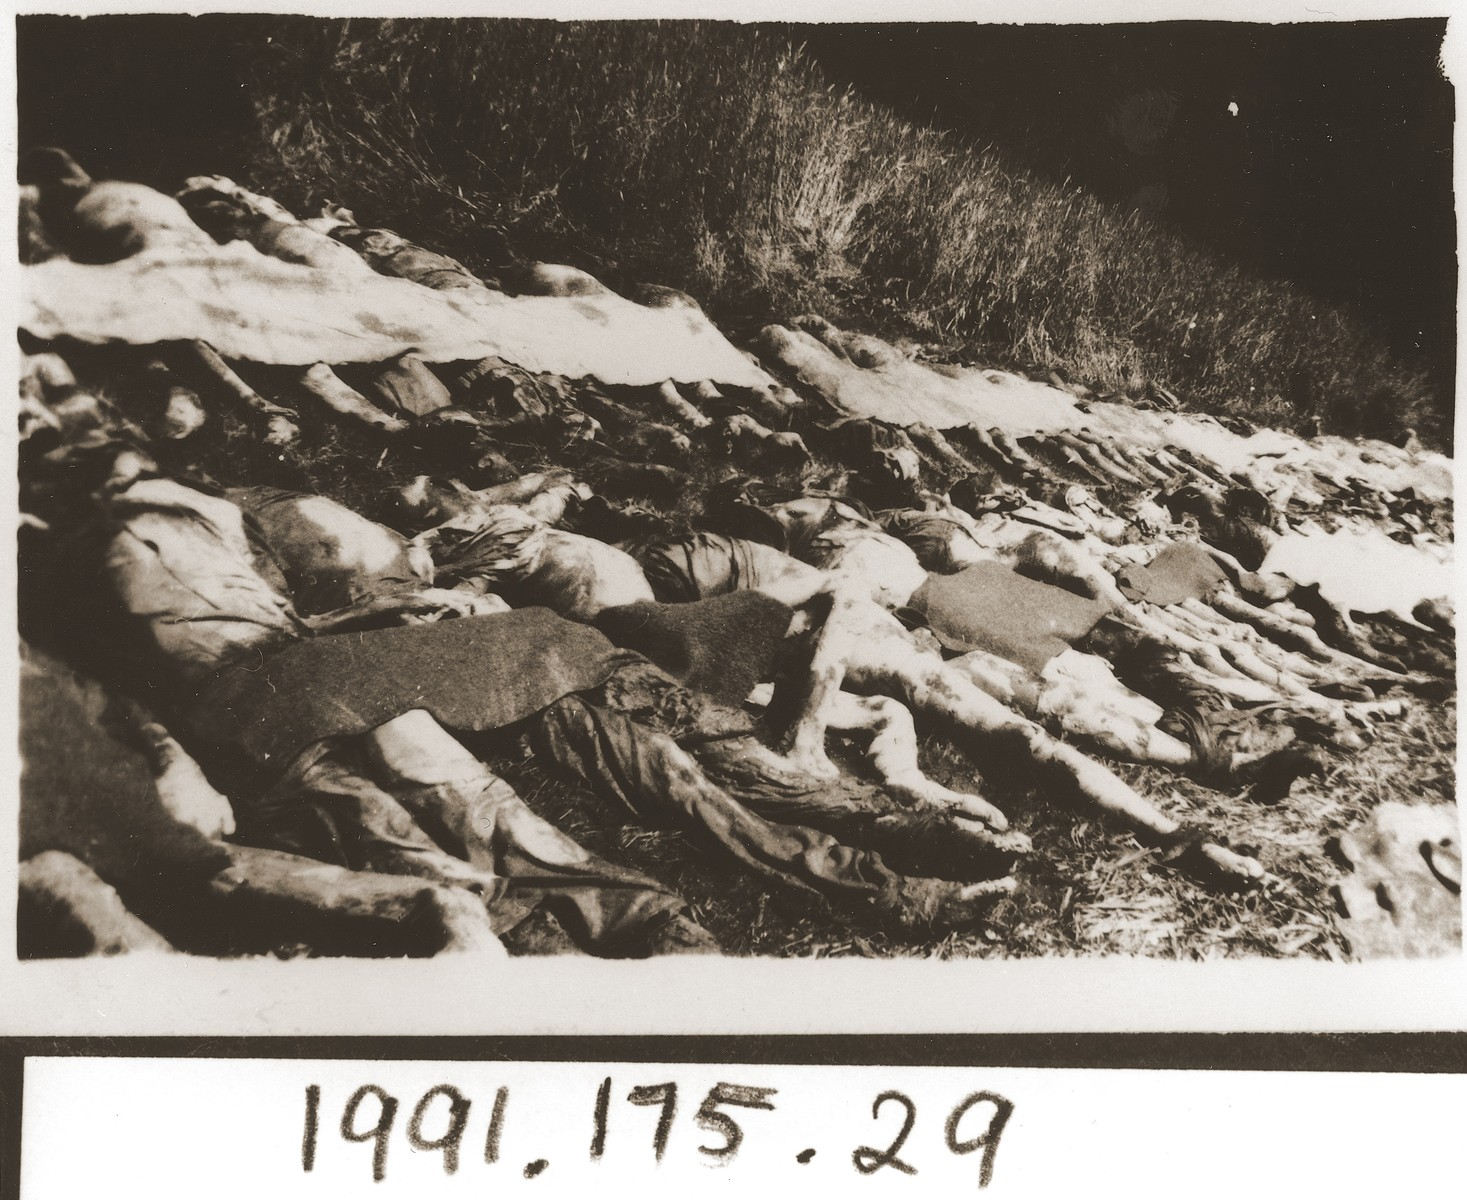 Rows of bodies exhumed from a mass grave in the vicinity of Nammering.